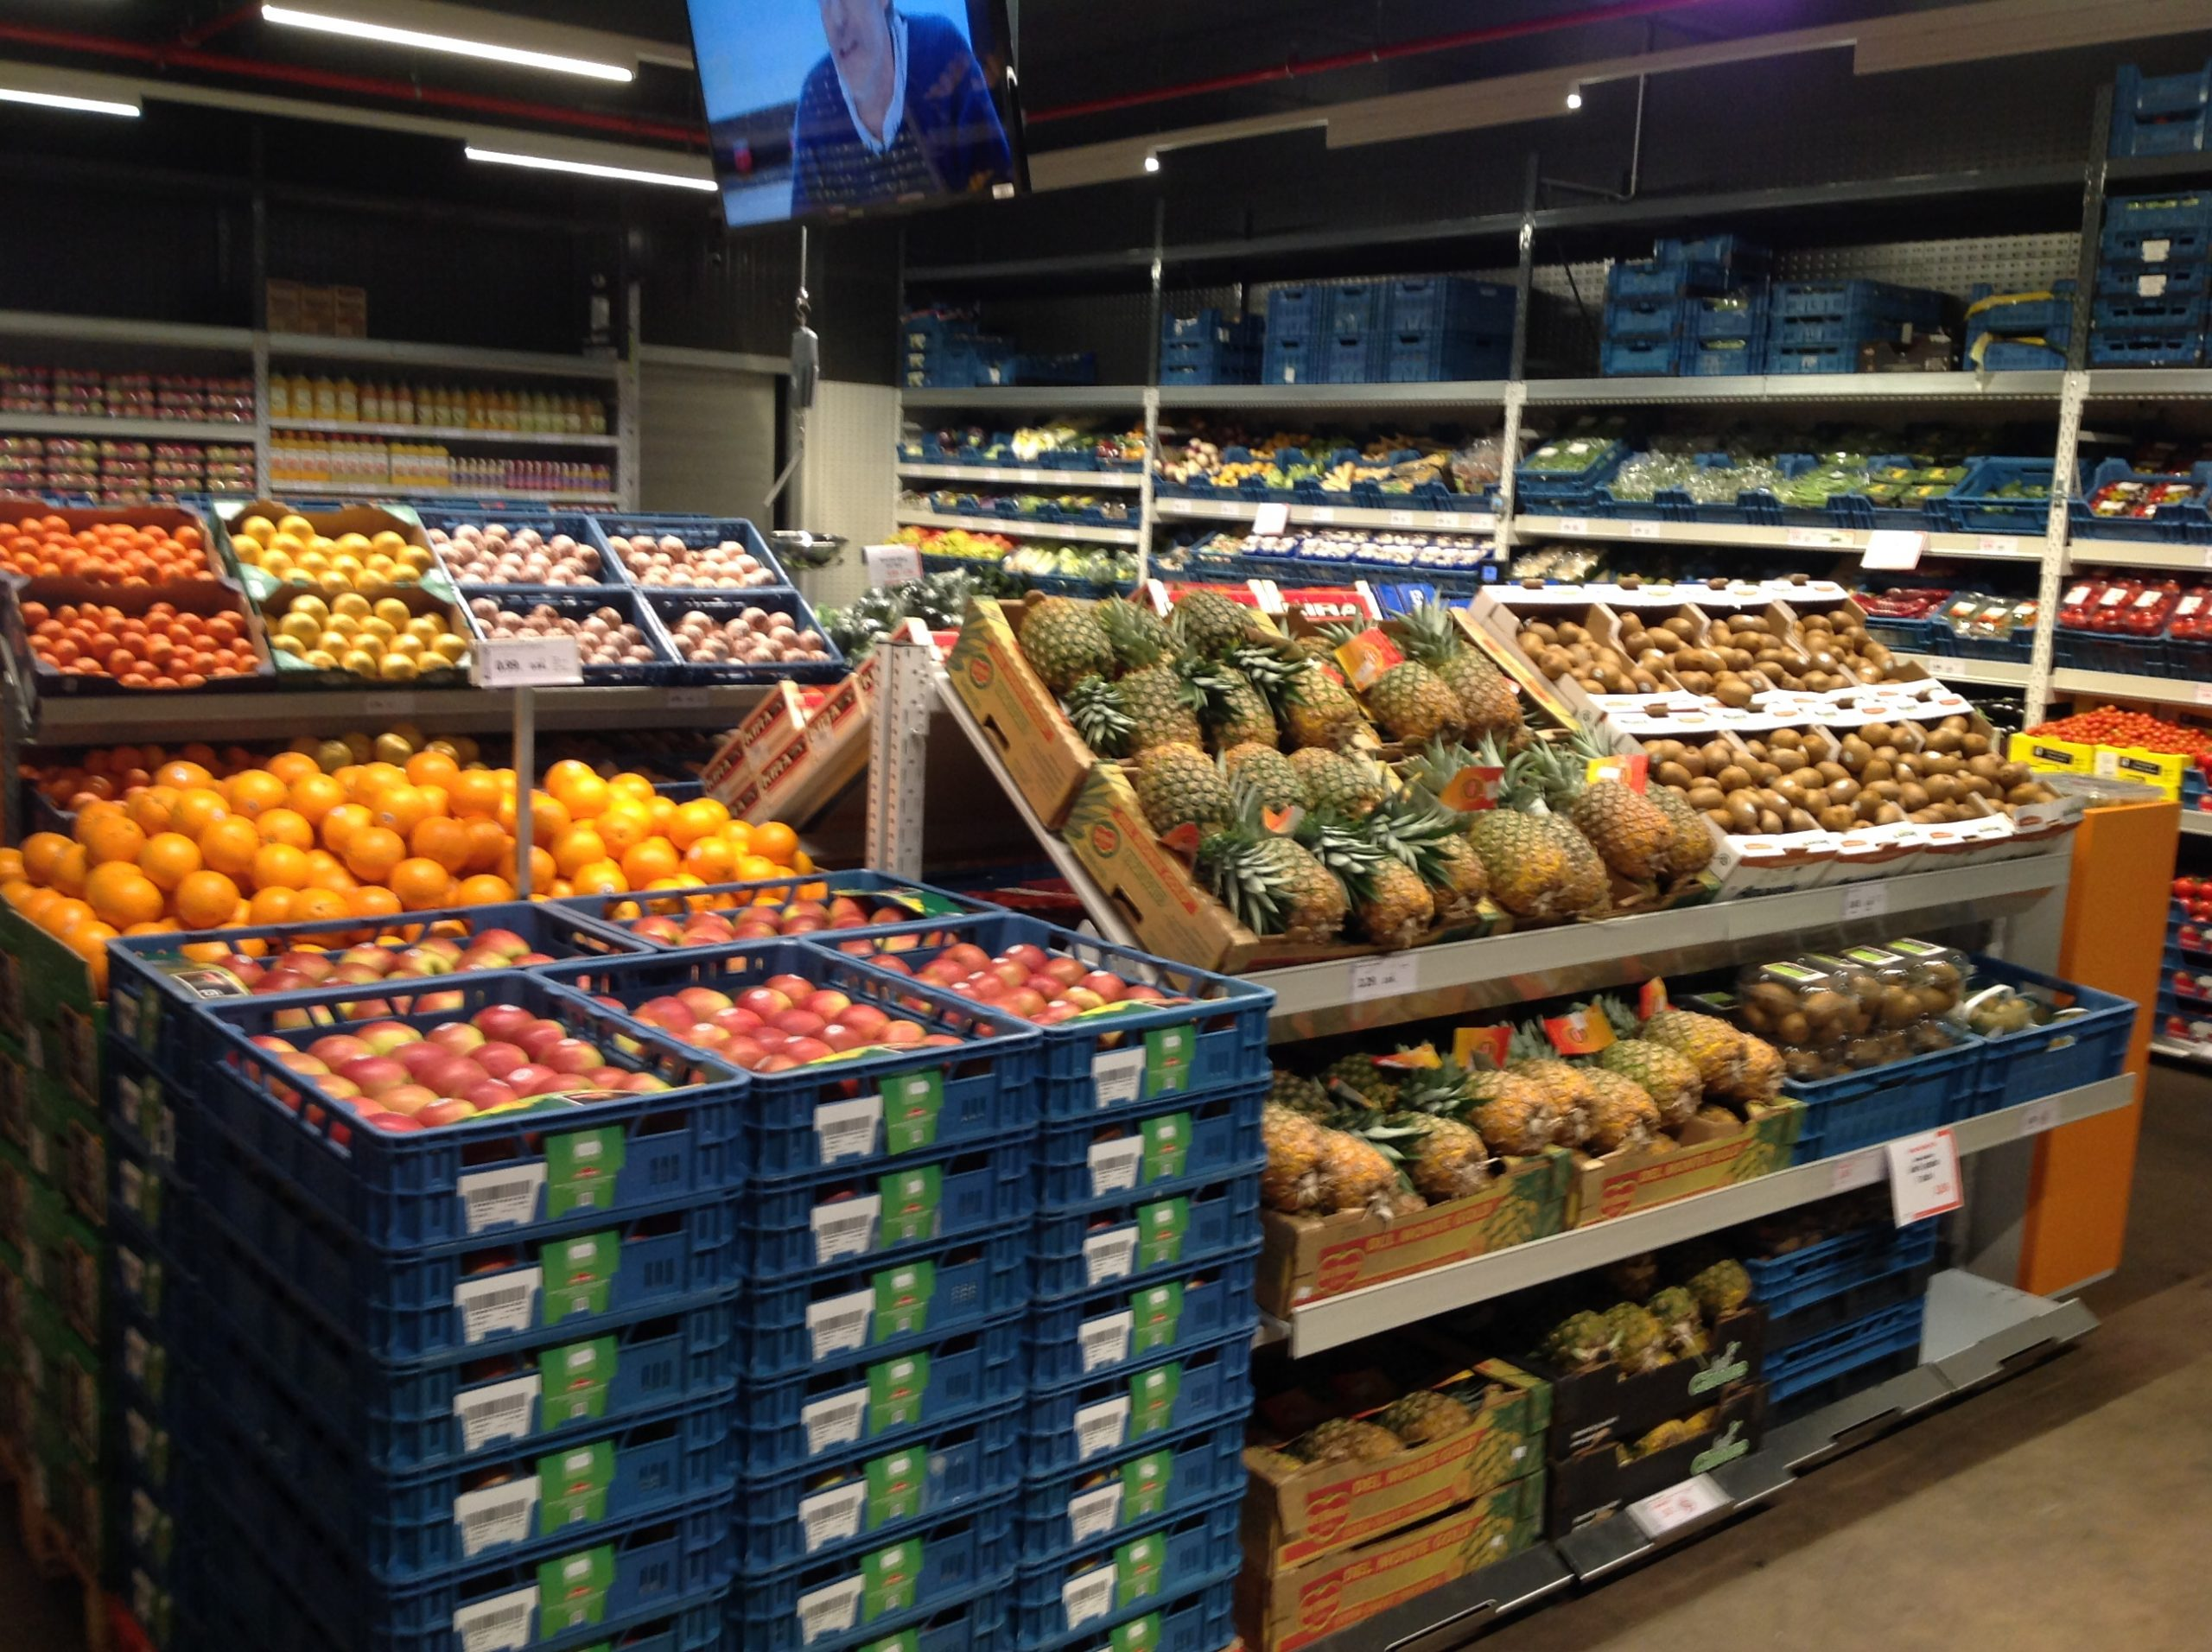 Priorities for the Colruyt group include innovation in e-commerce, and helping consumers choose healthy and sustainable products via 'simplicity in retail'.